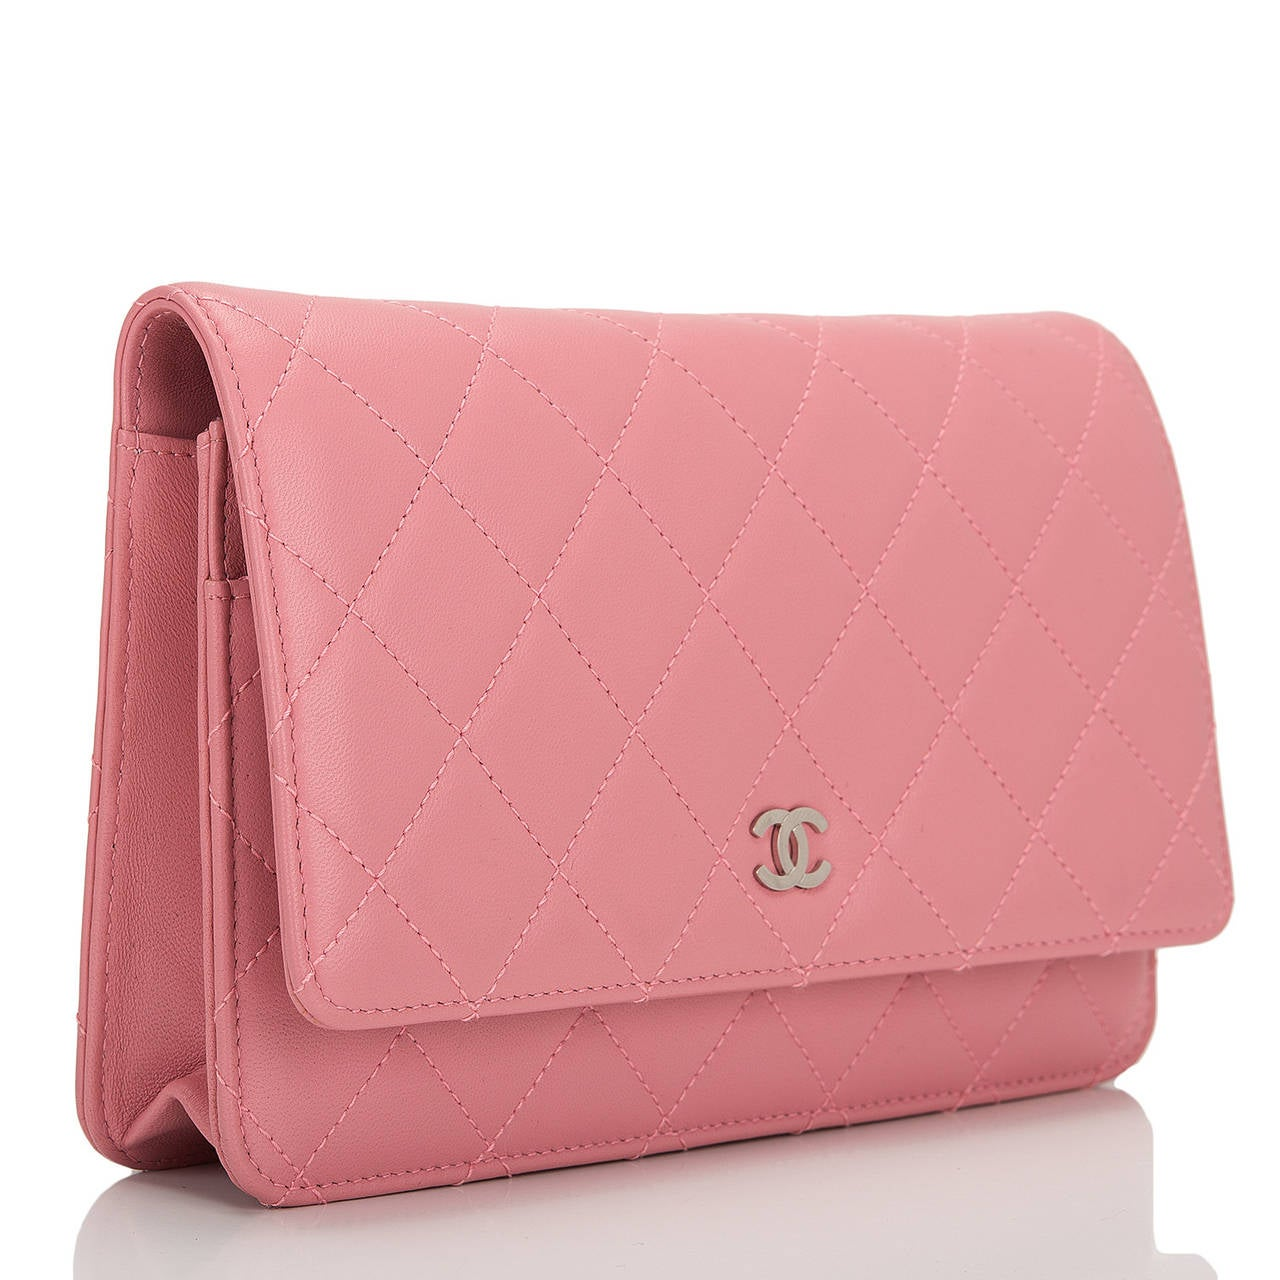 Chanel blush pink Classic Wallet On Chain (WOC) of quilted lambskin leather with silver tone hardware.  This Wallet On Chain features signature Chanel quilting, a front flap with CC charm and hidden snap closure, a half moon rear pocket and an